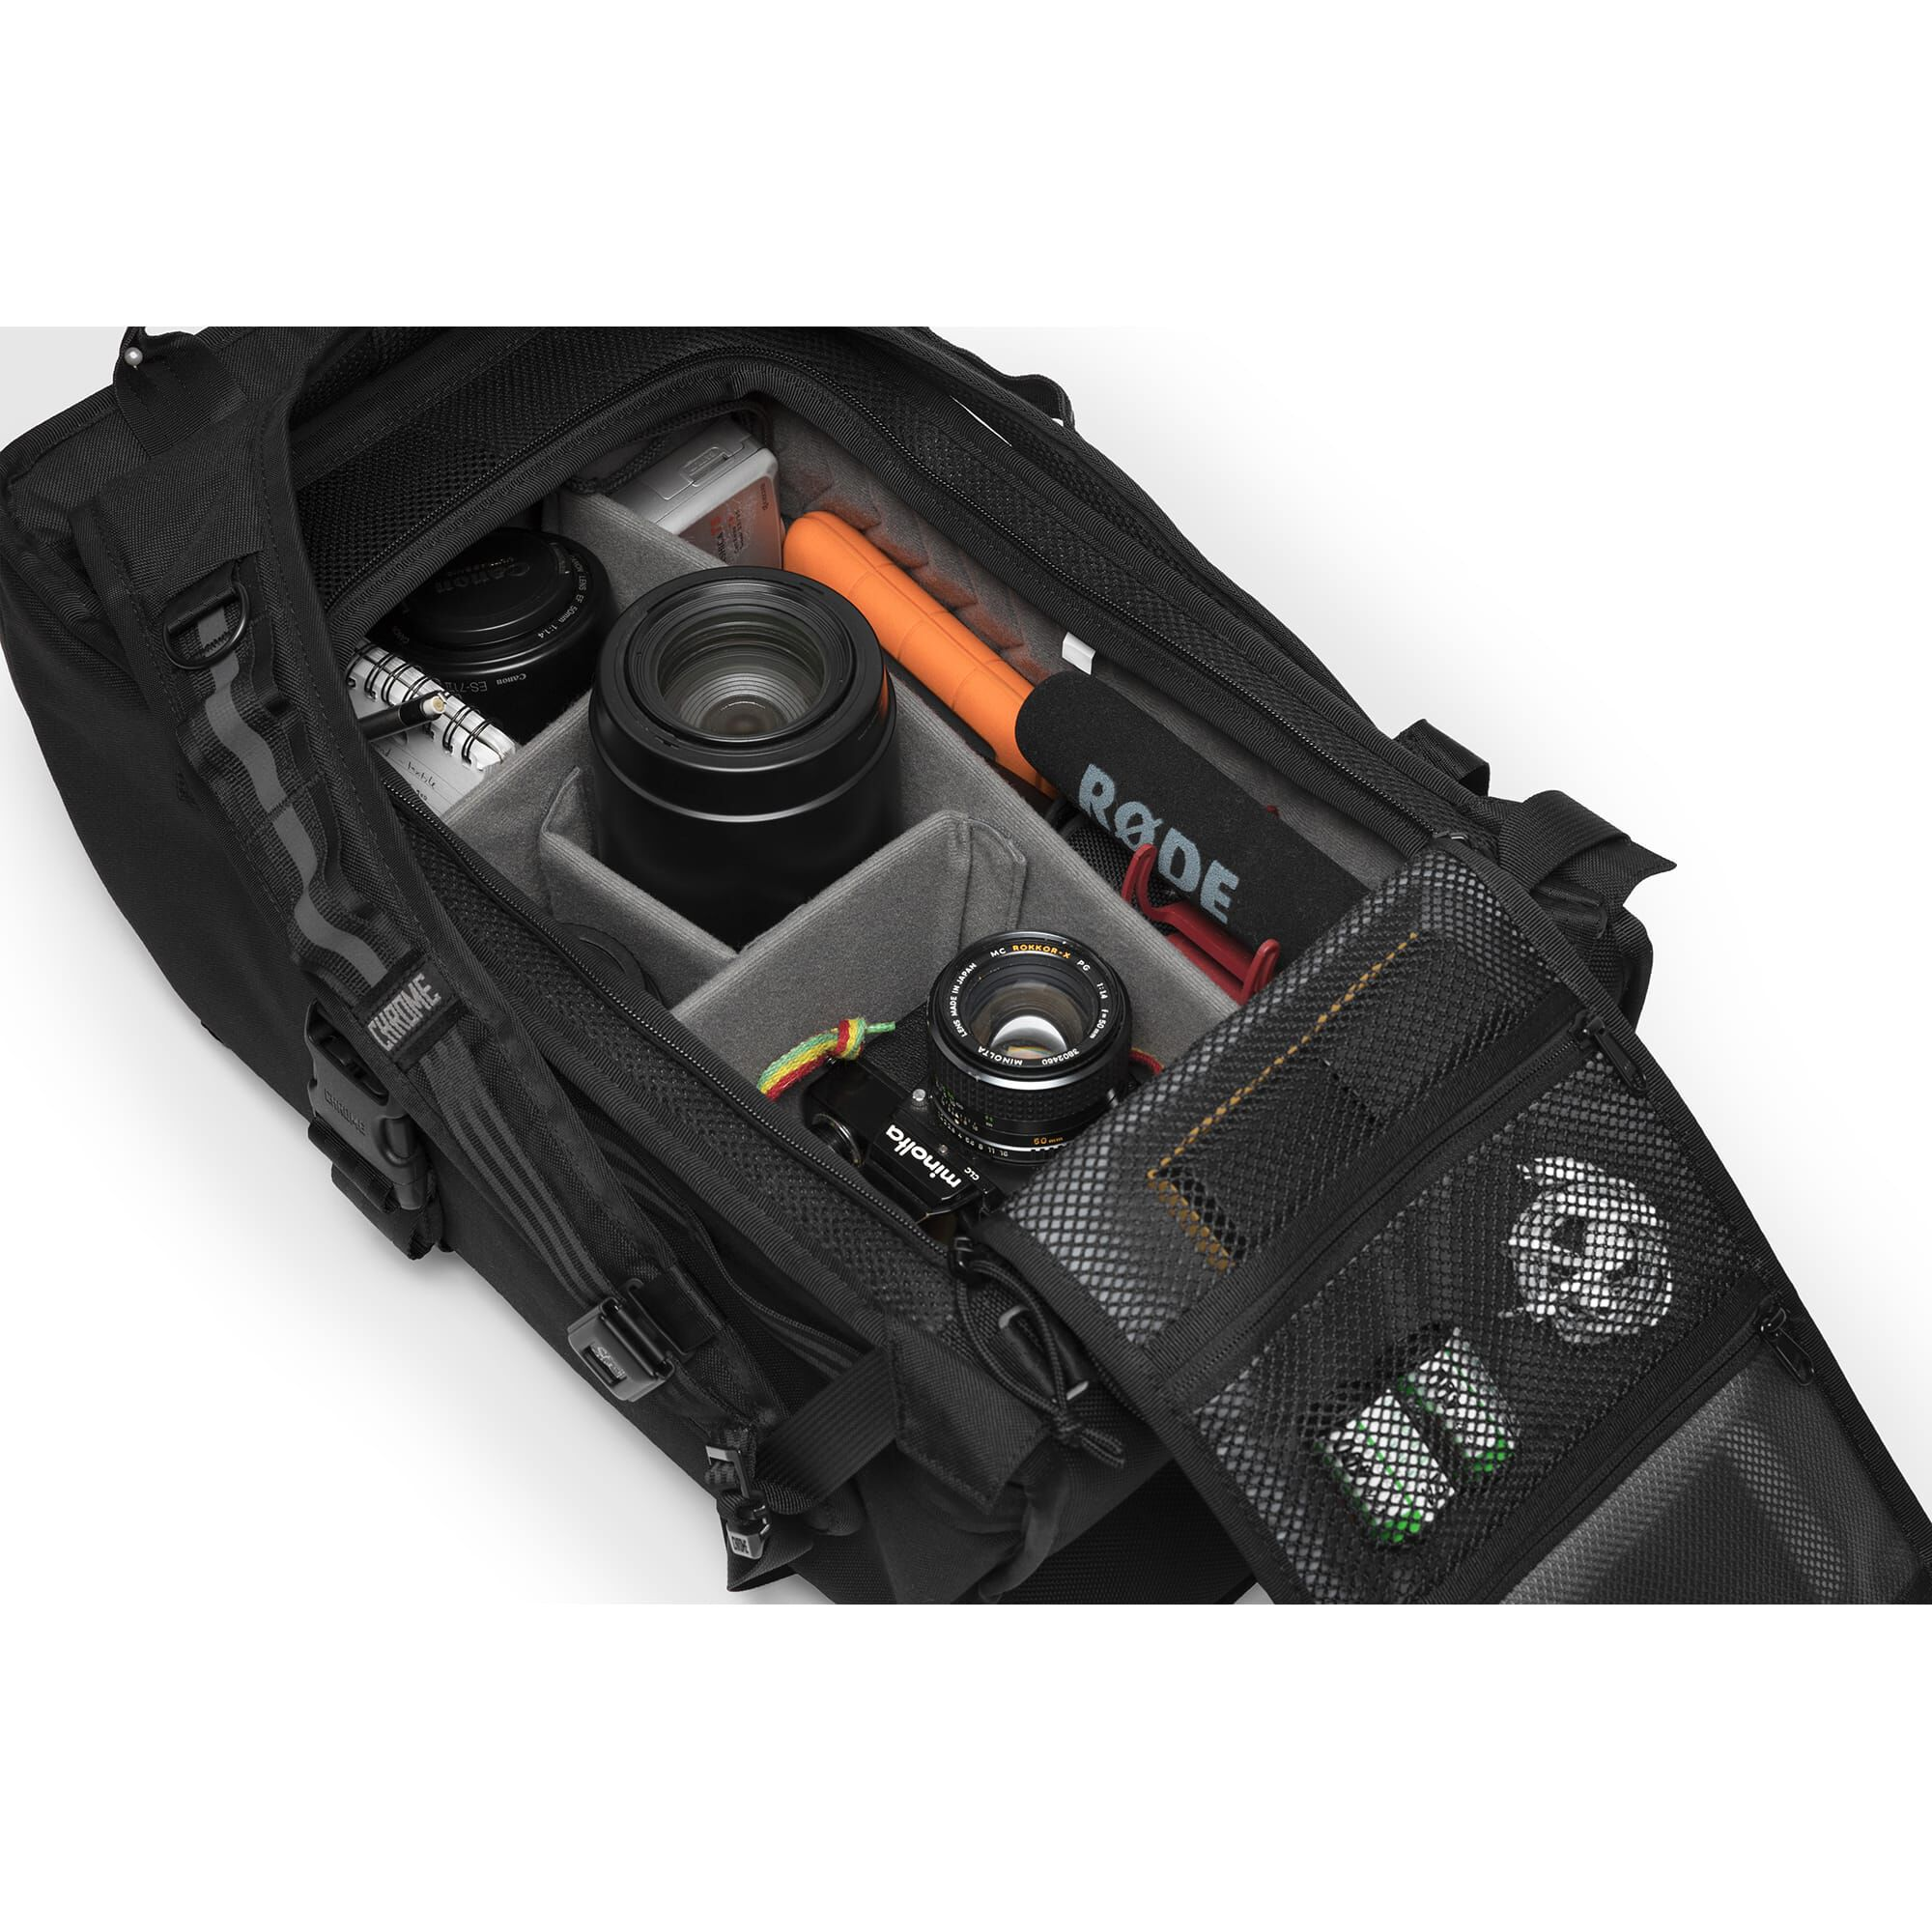 Niko F Stop Camera Backpack Fits Laptops Up To 13 20h X 10w Nikon Tas Kamera In All Black Small View